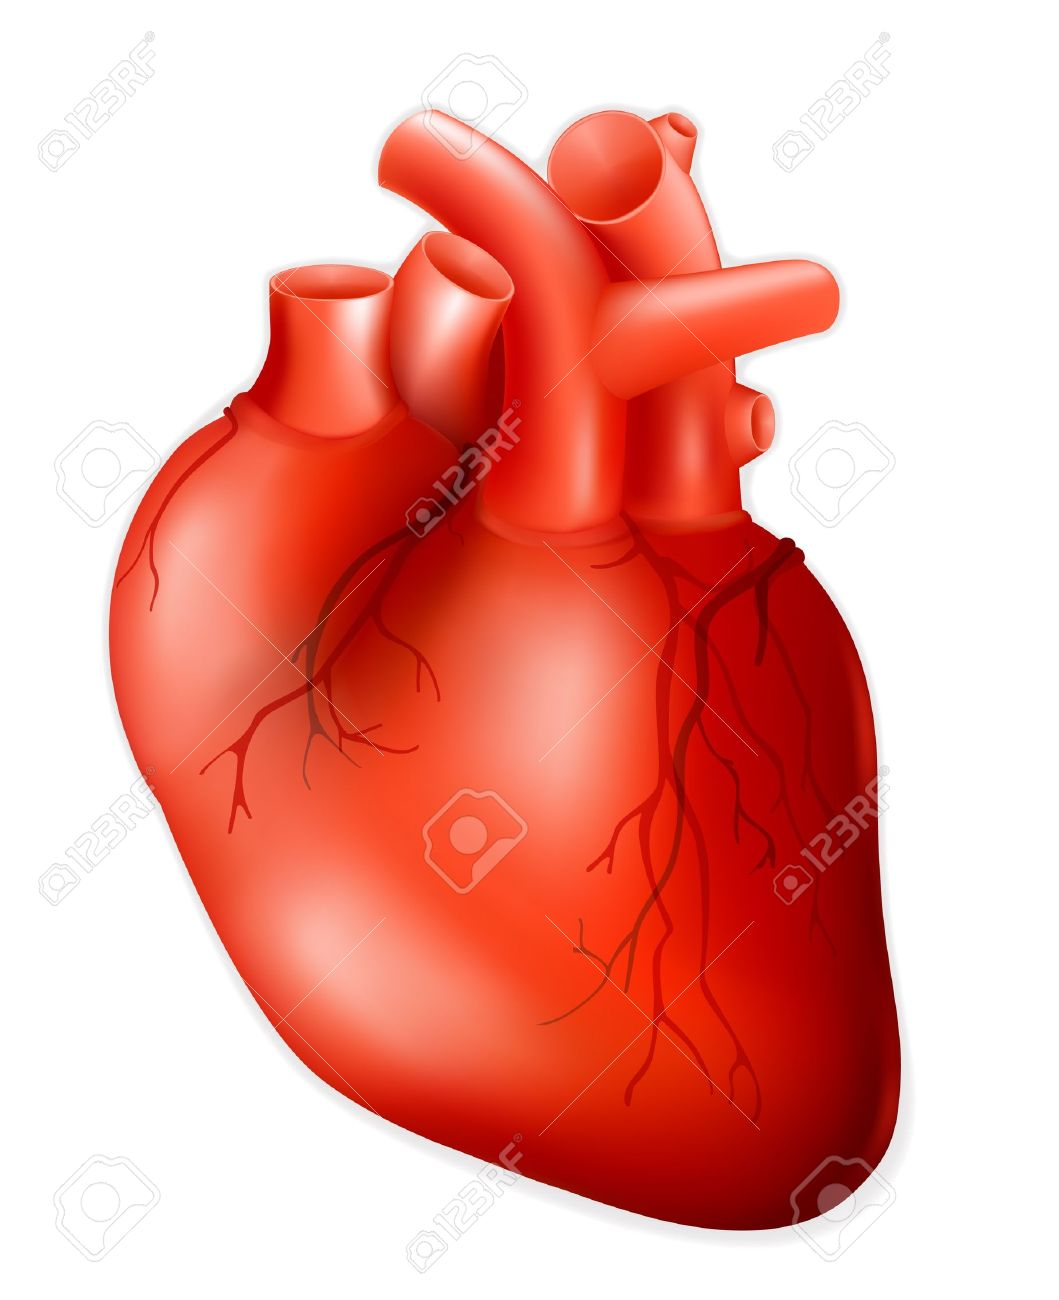 human heart stock photos & pictures. royalty free human heart, Muscles